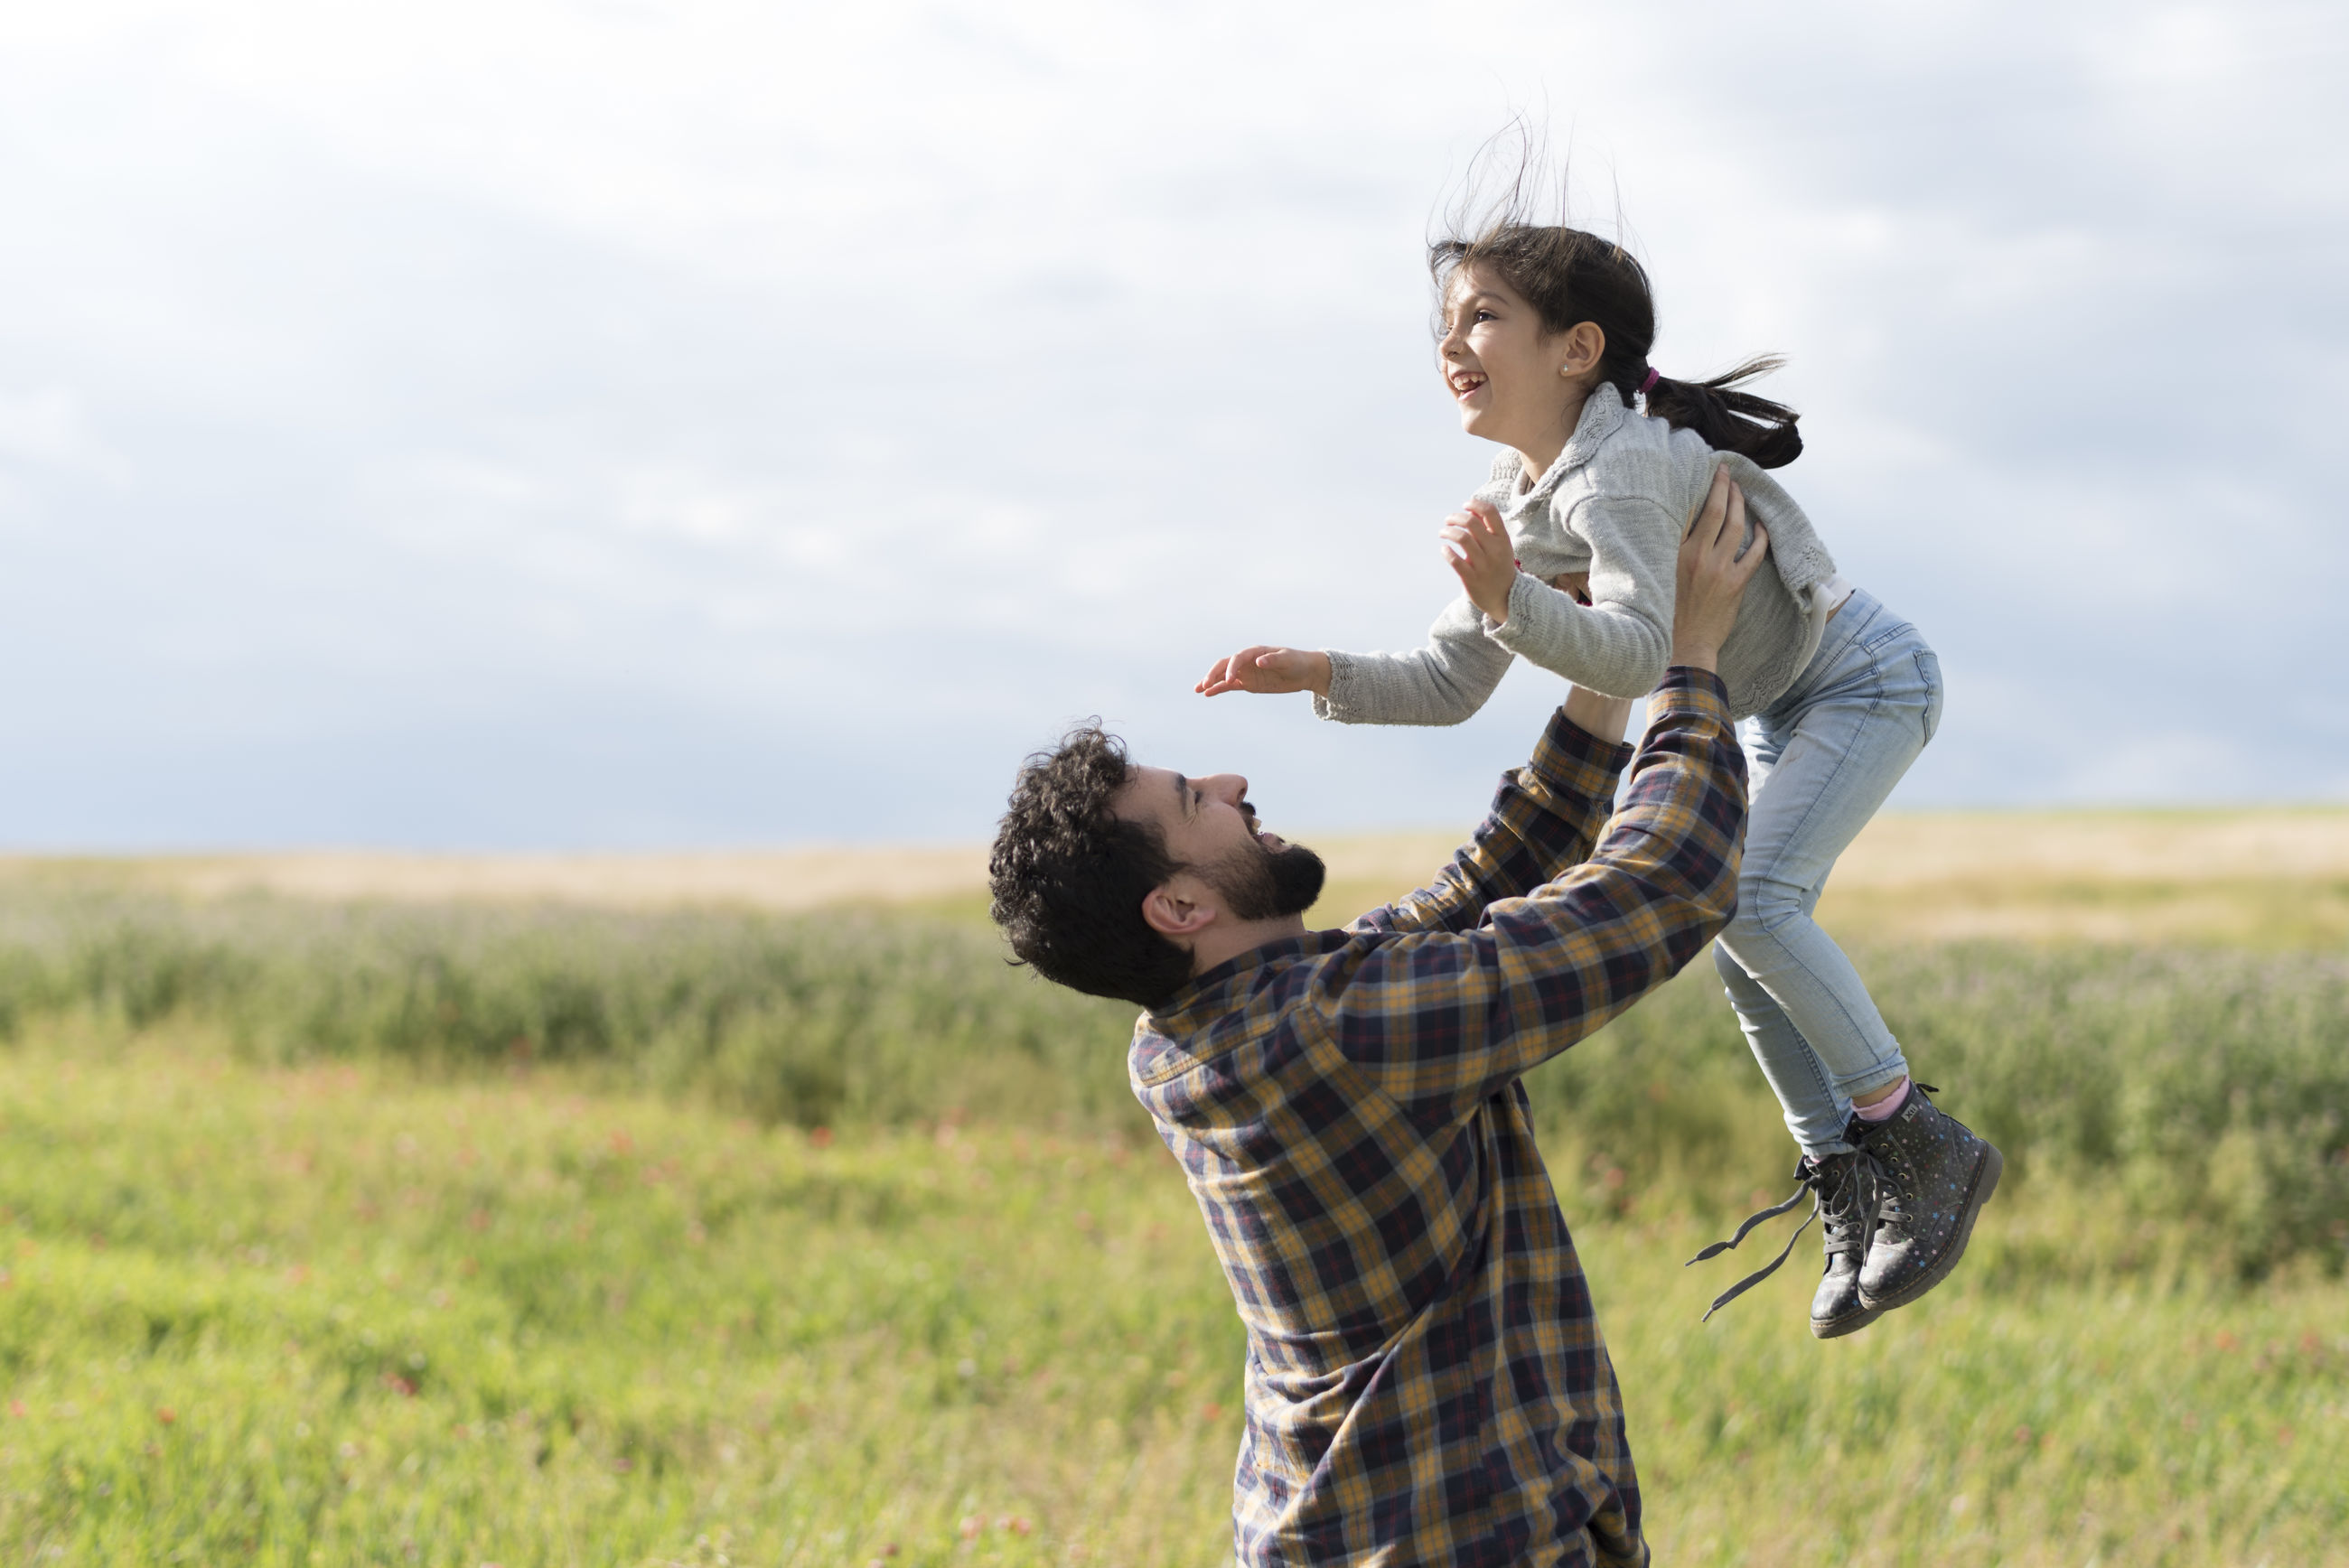 Father carrying daughter on field